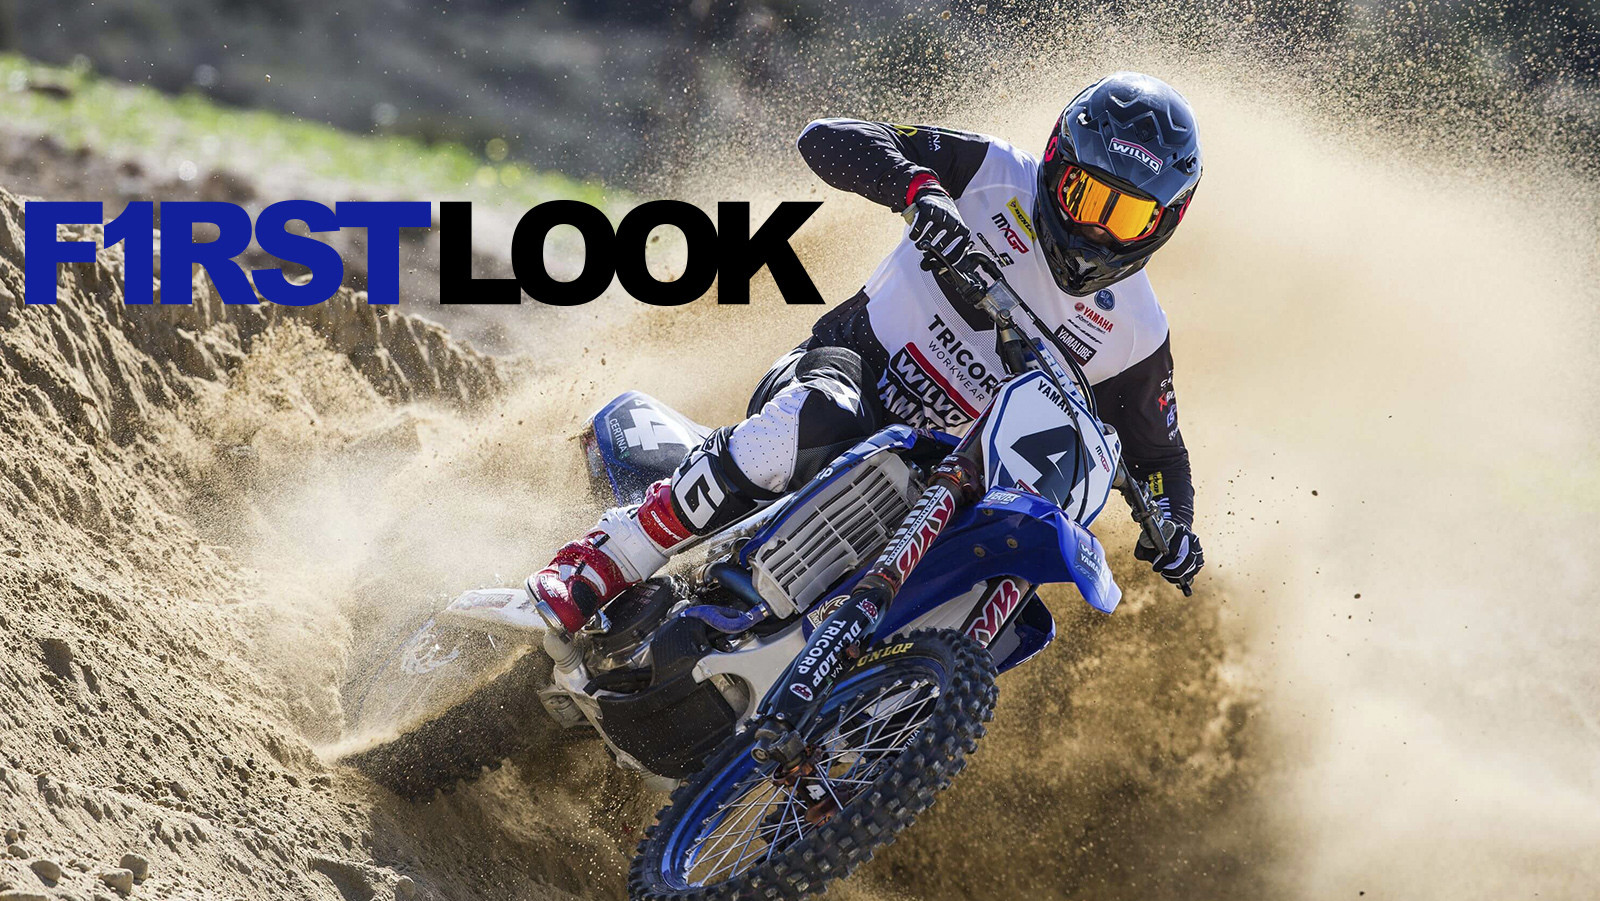 First Look: Wilvo Yamaha MXGP Team